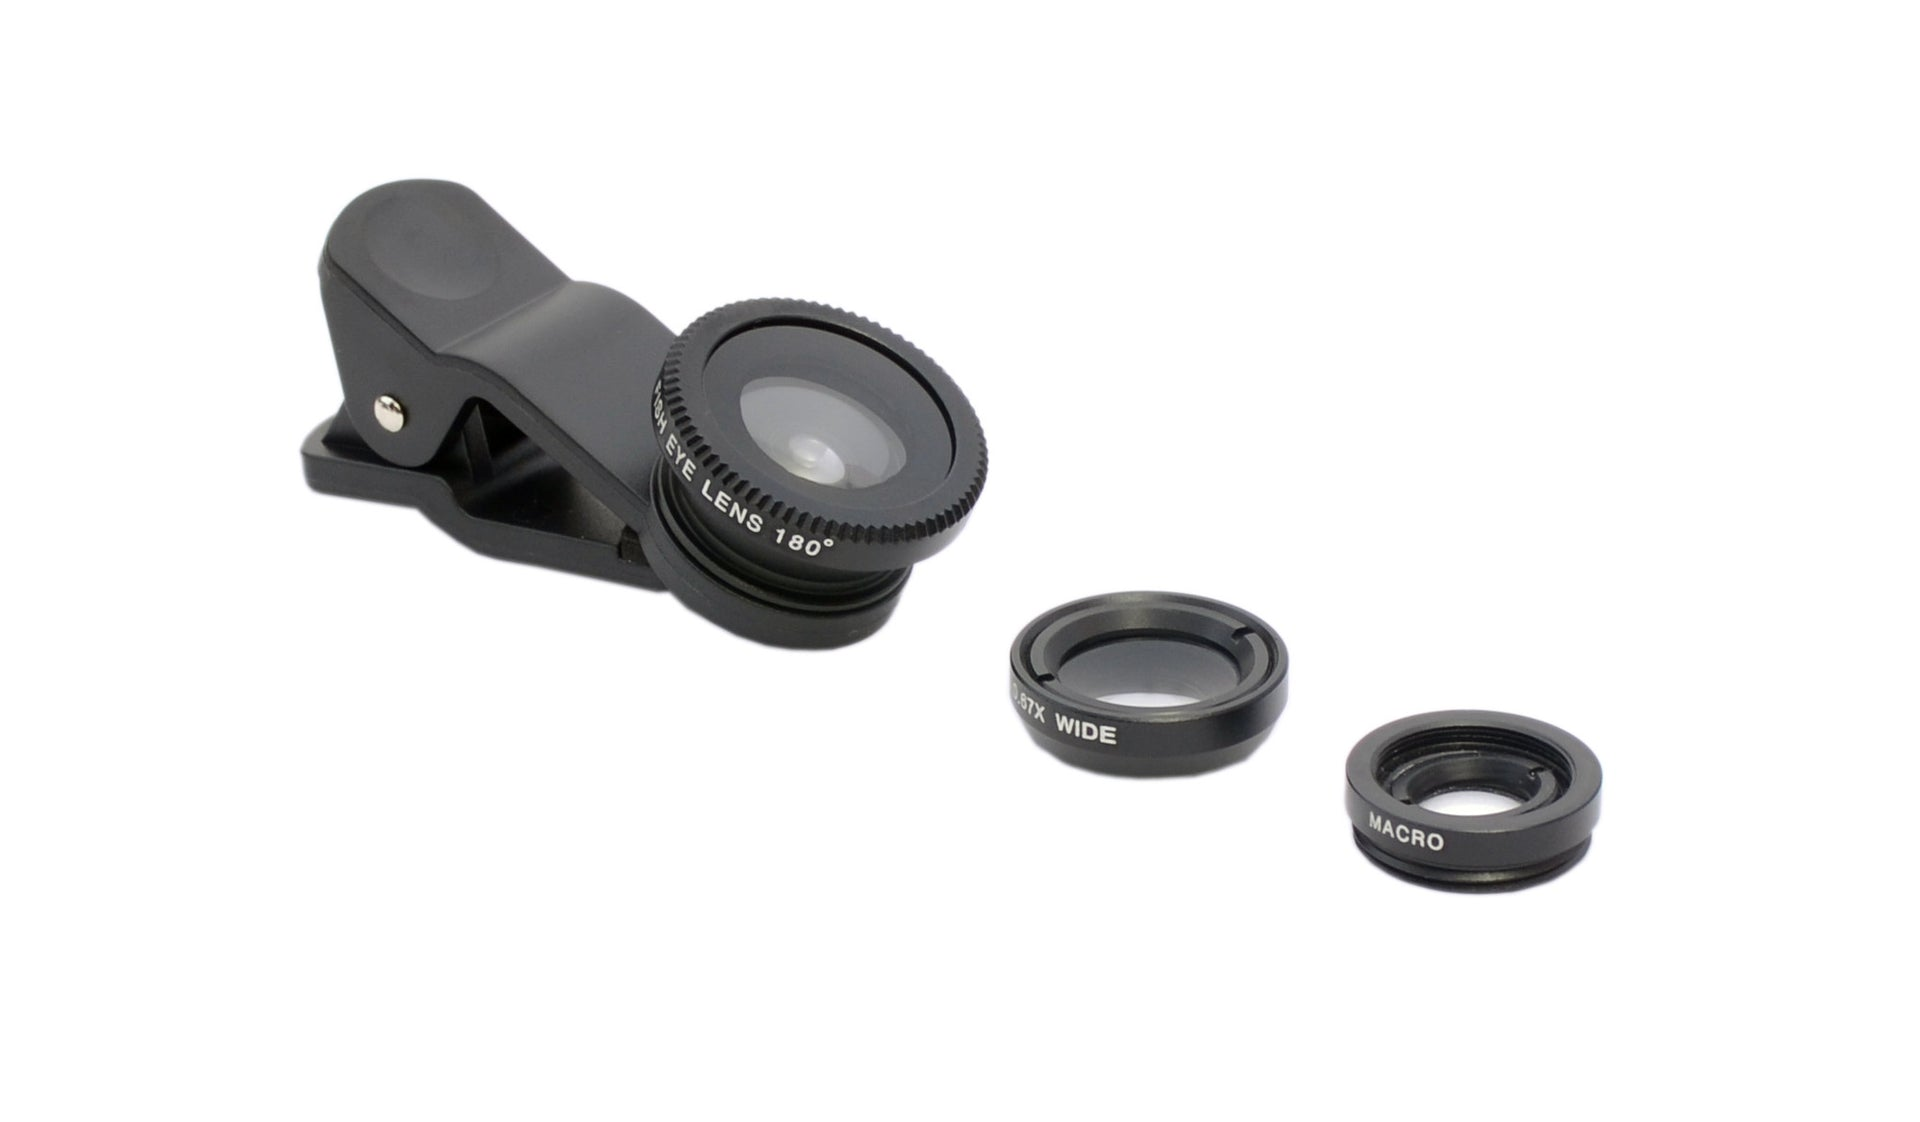 Multiple 3 in 1 Phone Lens